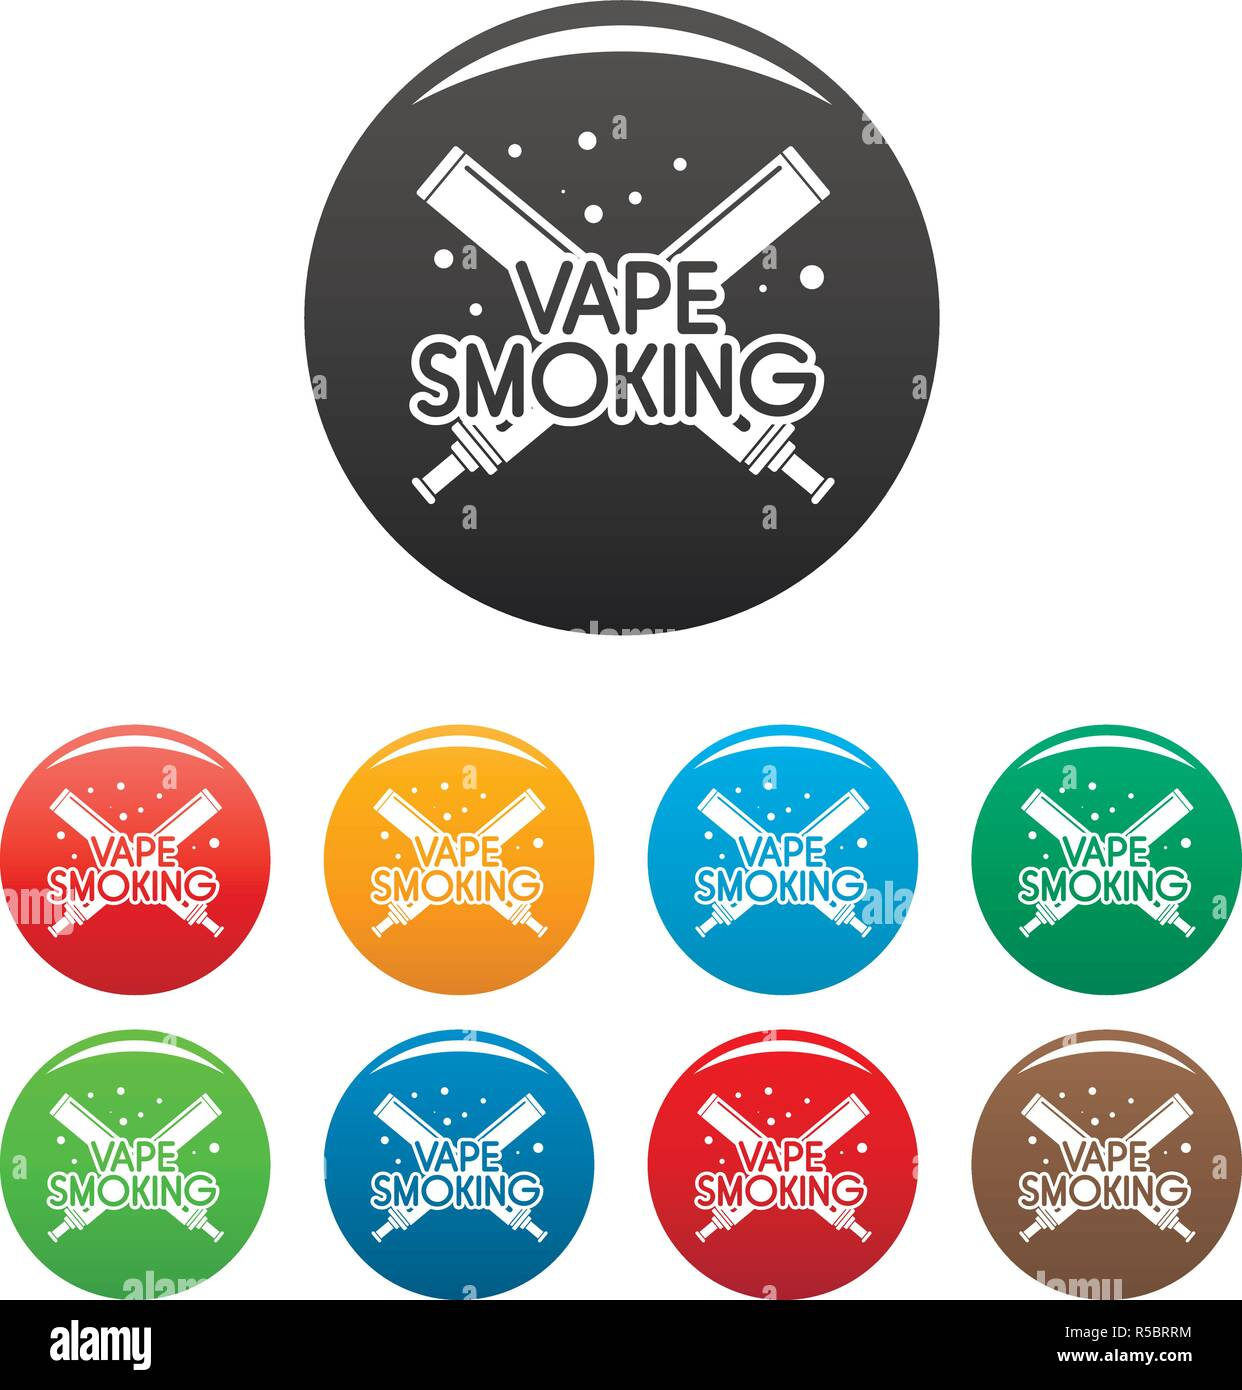 Vape smoking day icons set 9 color vector isolated on white for any design Stock Vector